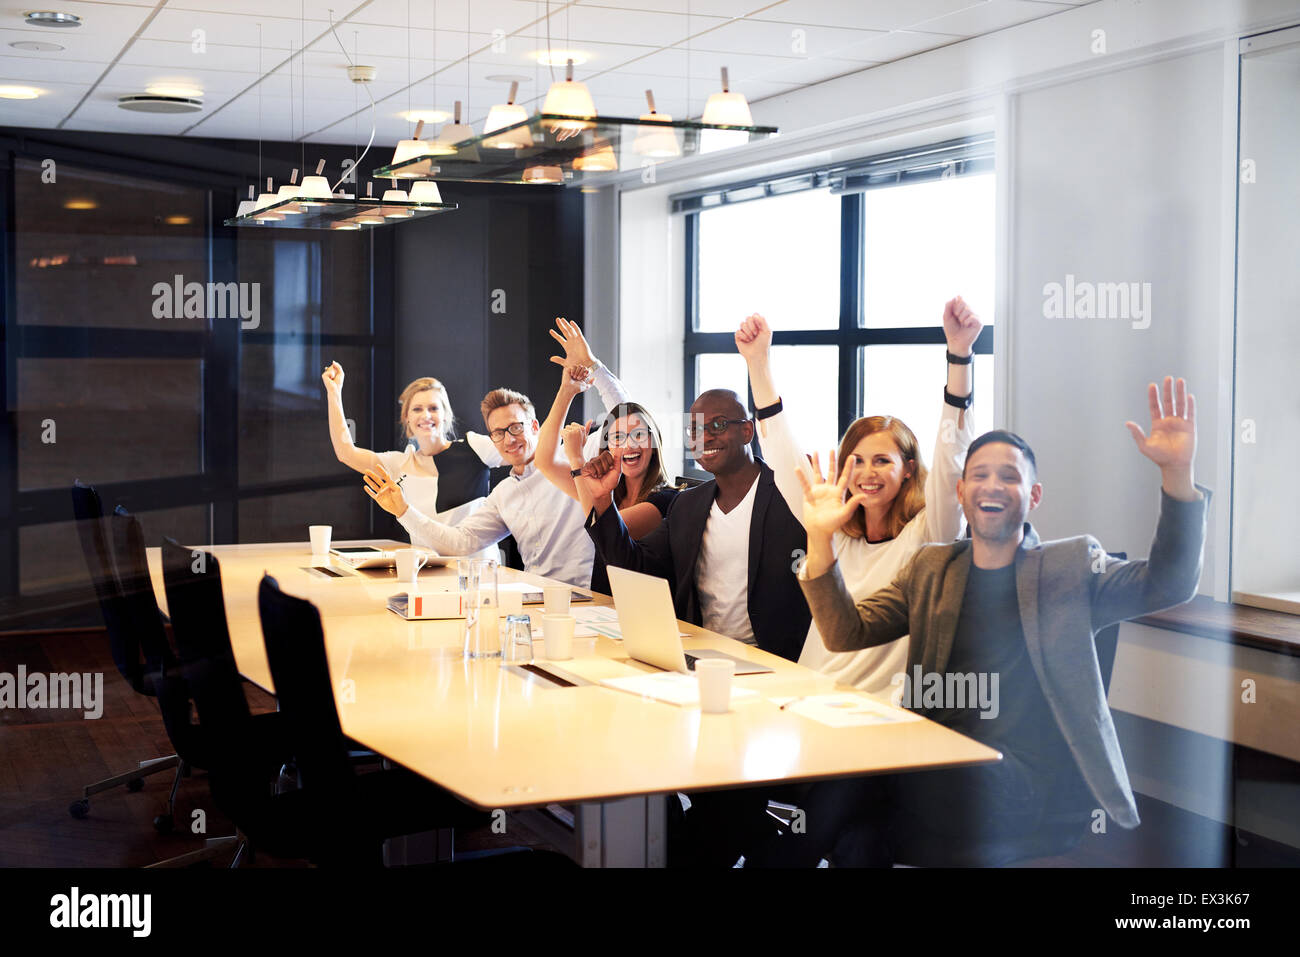 Group of young executives sitting at conference table posing with arms in air for camera. - Stock Image